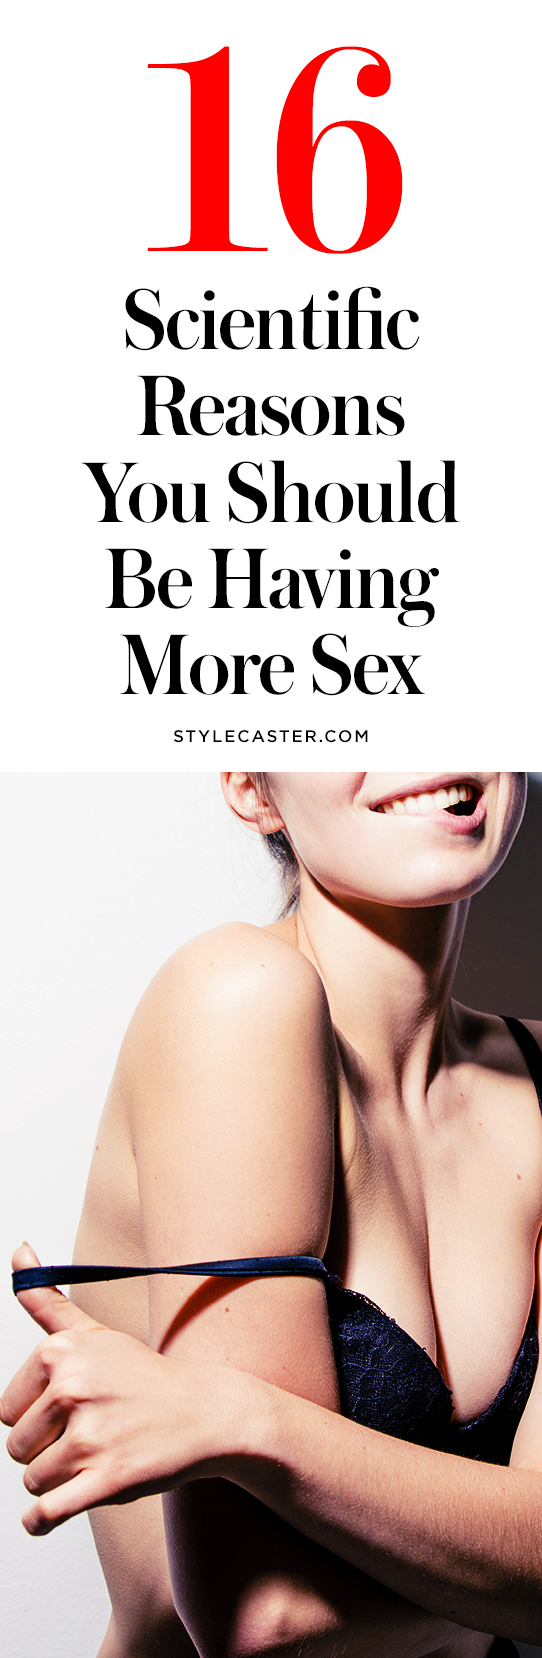 16 scientific reasons to have more sex | @stylecaster